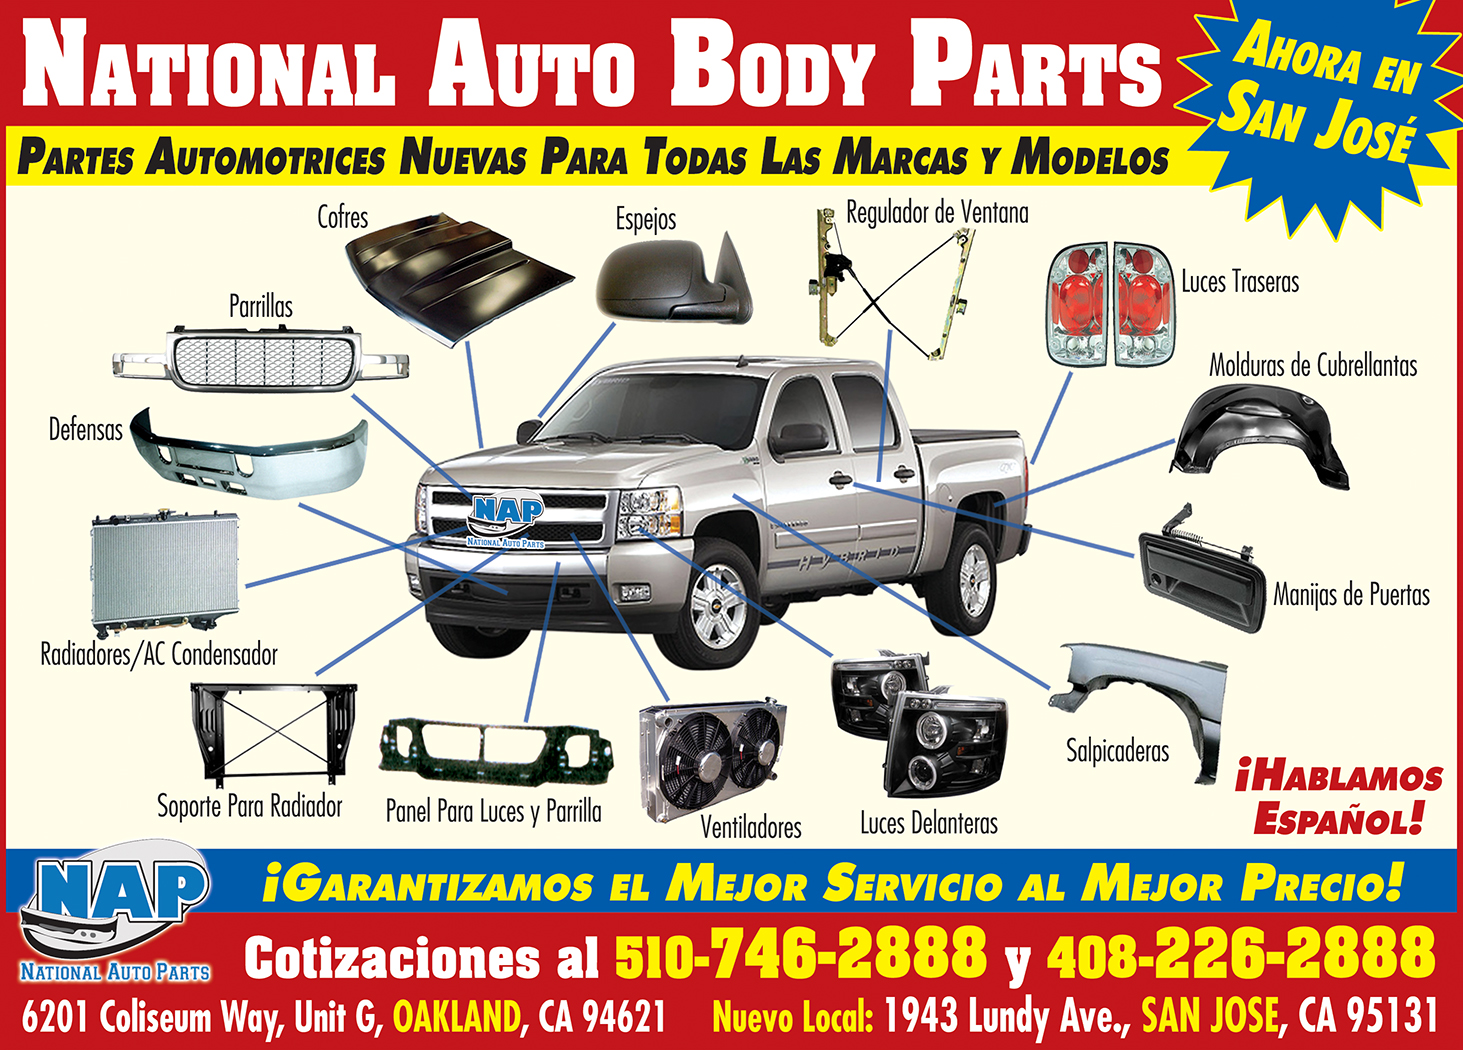 National Auto Body Parts 1pag Julio 2015.jpg